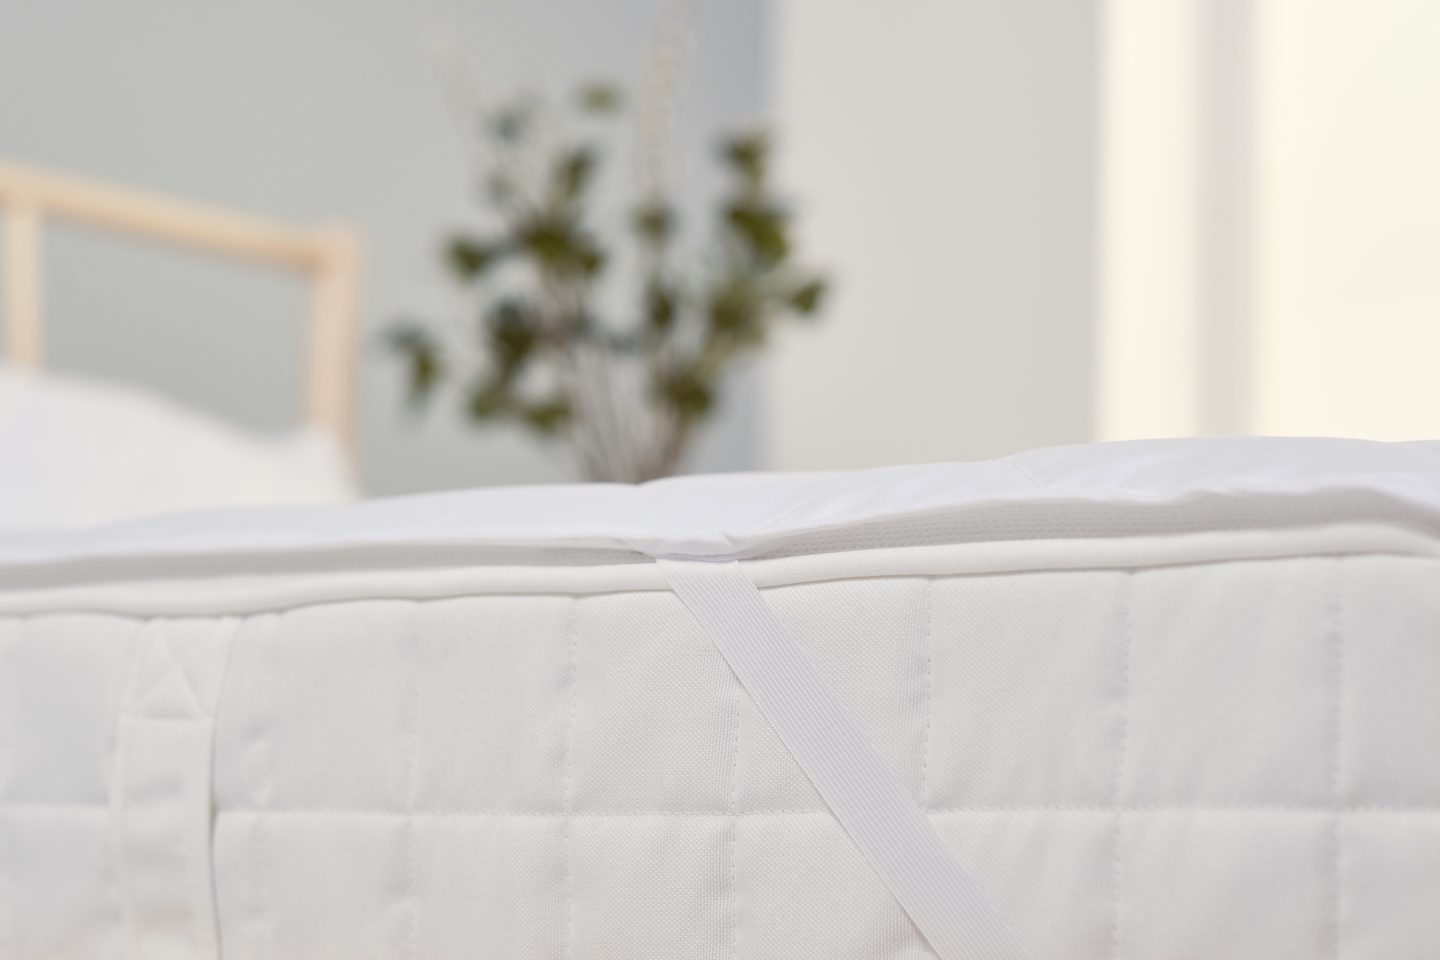 The edge of a mattress protector